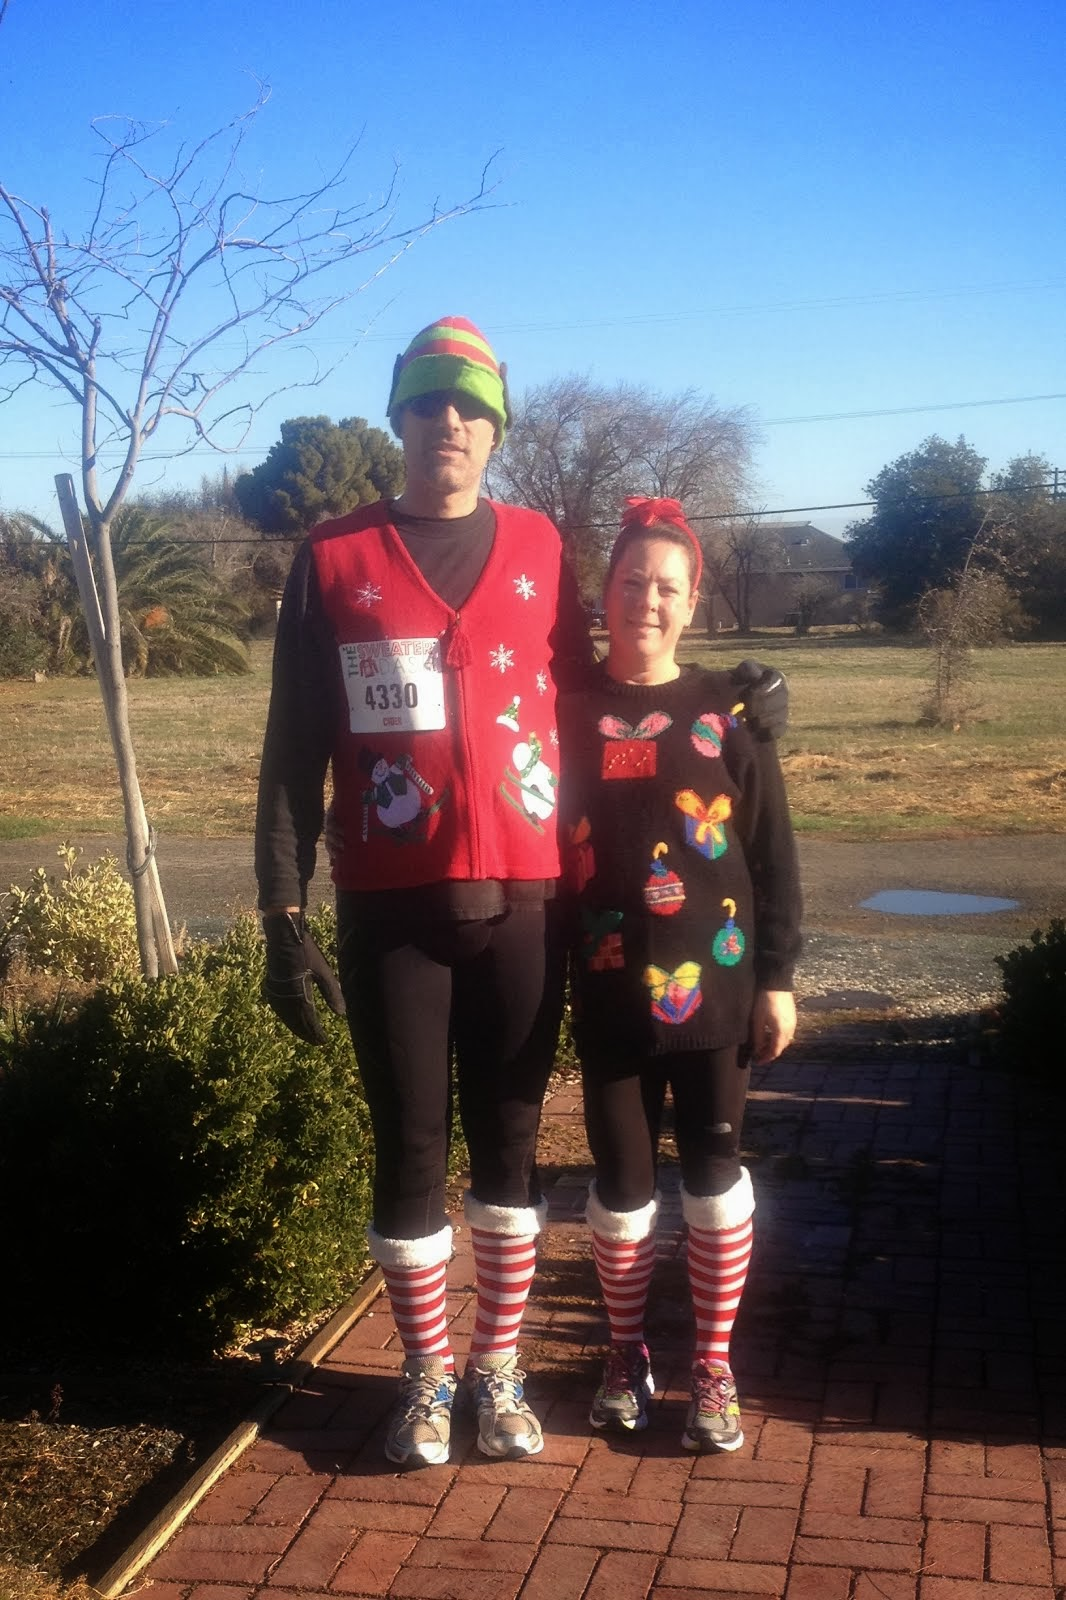 The Sweater Dash 5K 12/7/13